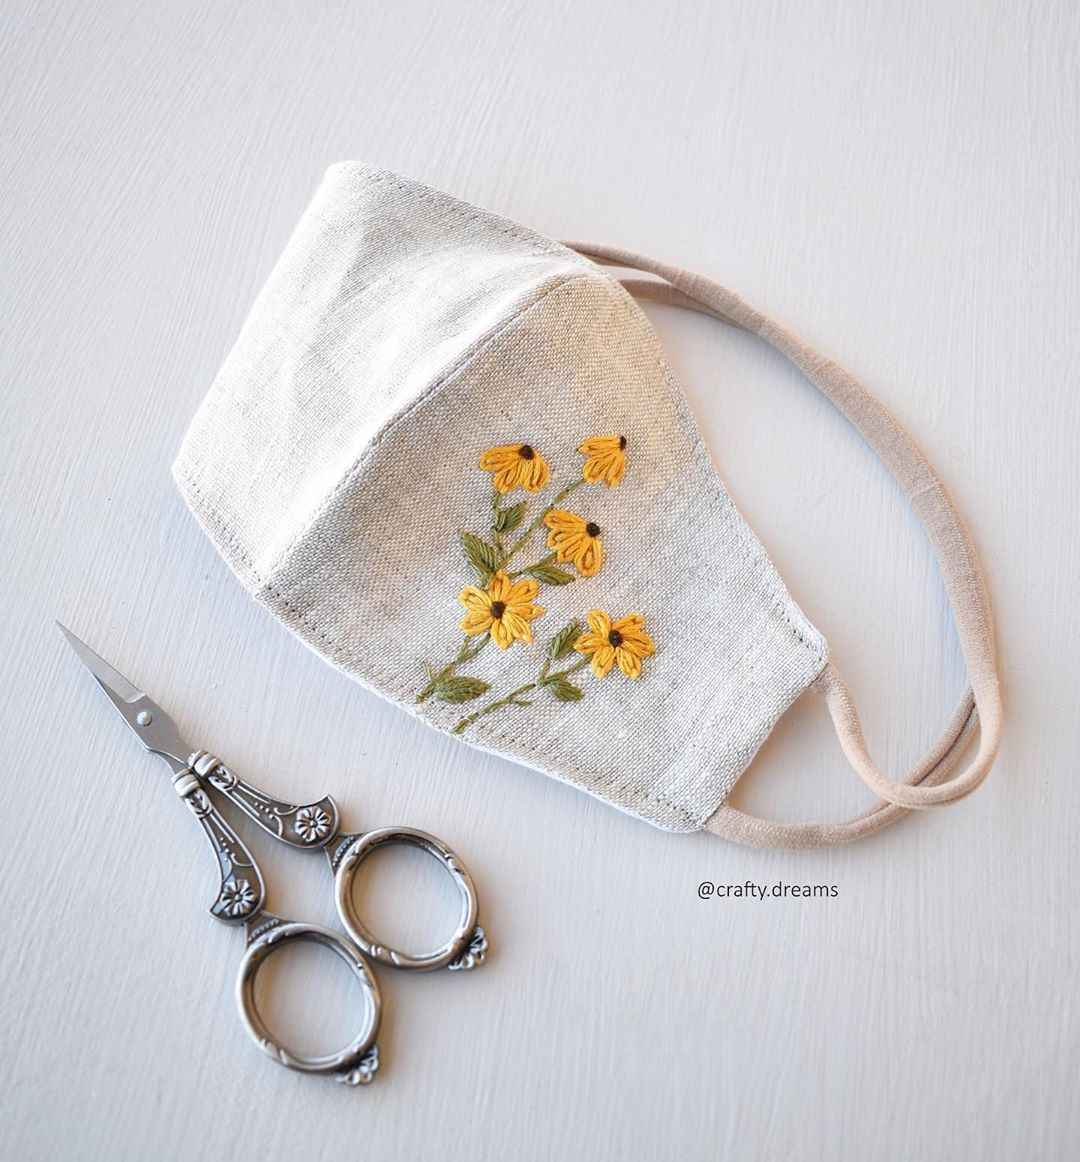 """Photo of Ashrifa Anwer on Instagram: """"Fabric face mask with a spring vibe 😷 ✨ . . . . #craftydreams #embroidery #ashrifaanwer #fiberartist #hoopembroidery #etsy #etsyuk…"""""""